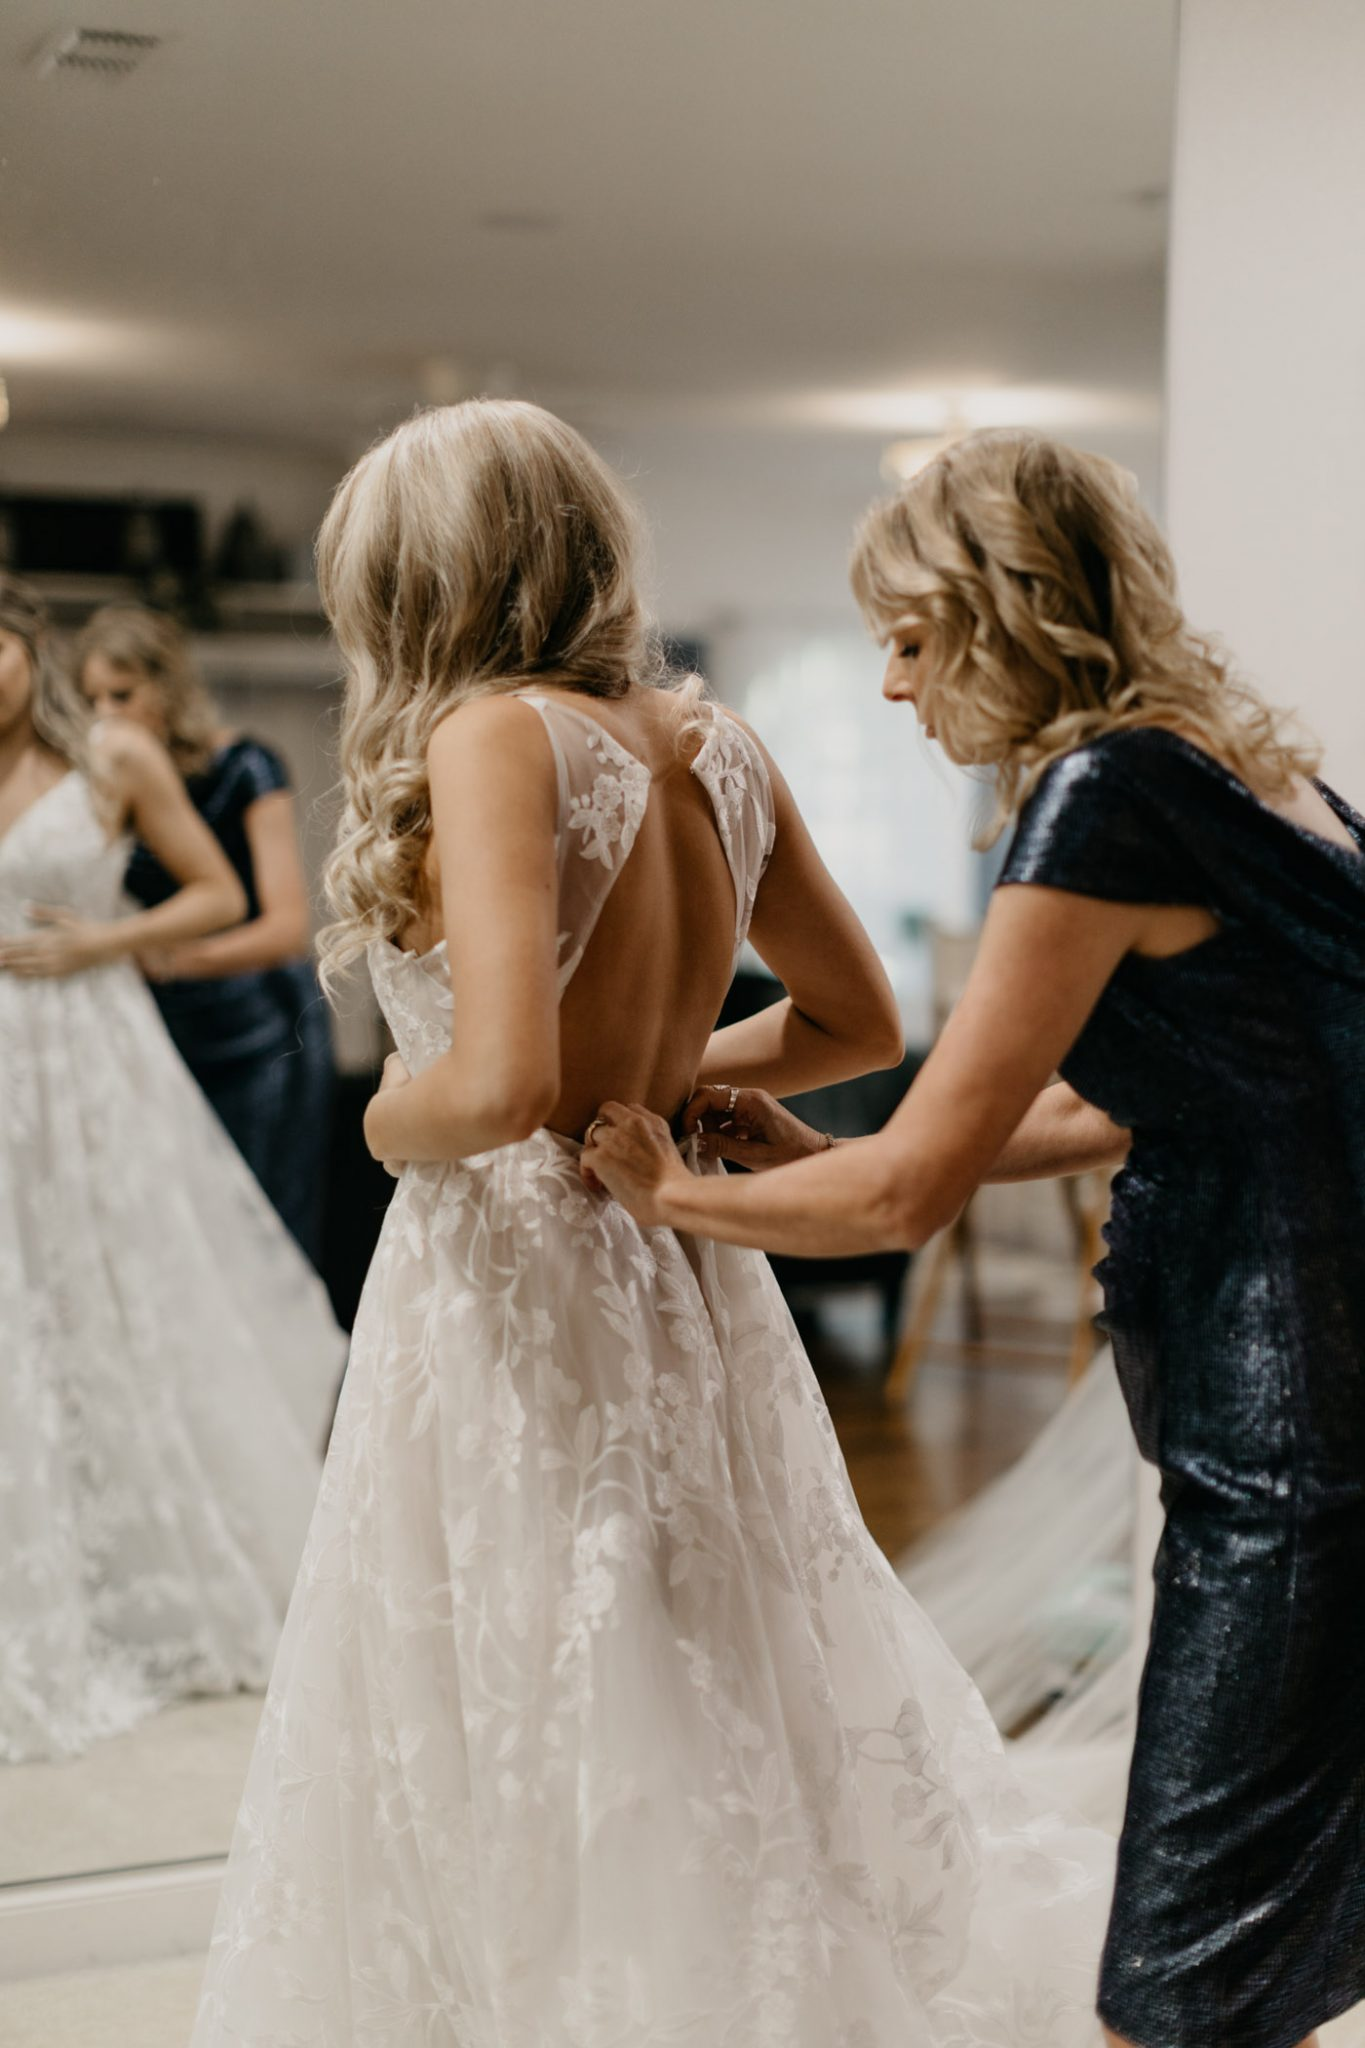 mom helping bride put on her wedding dress on her wedding day